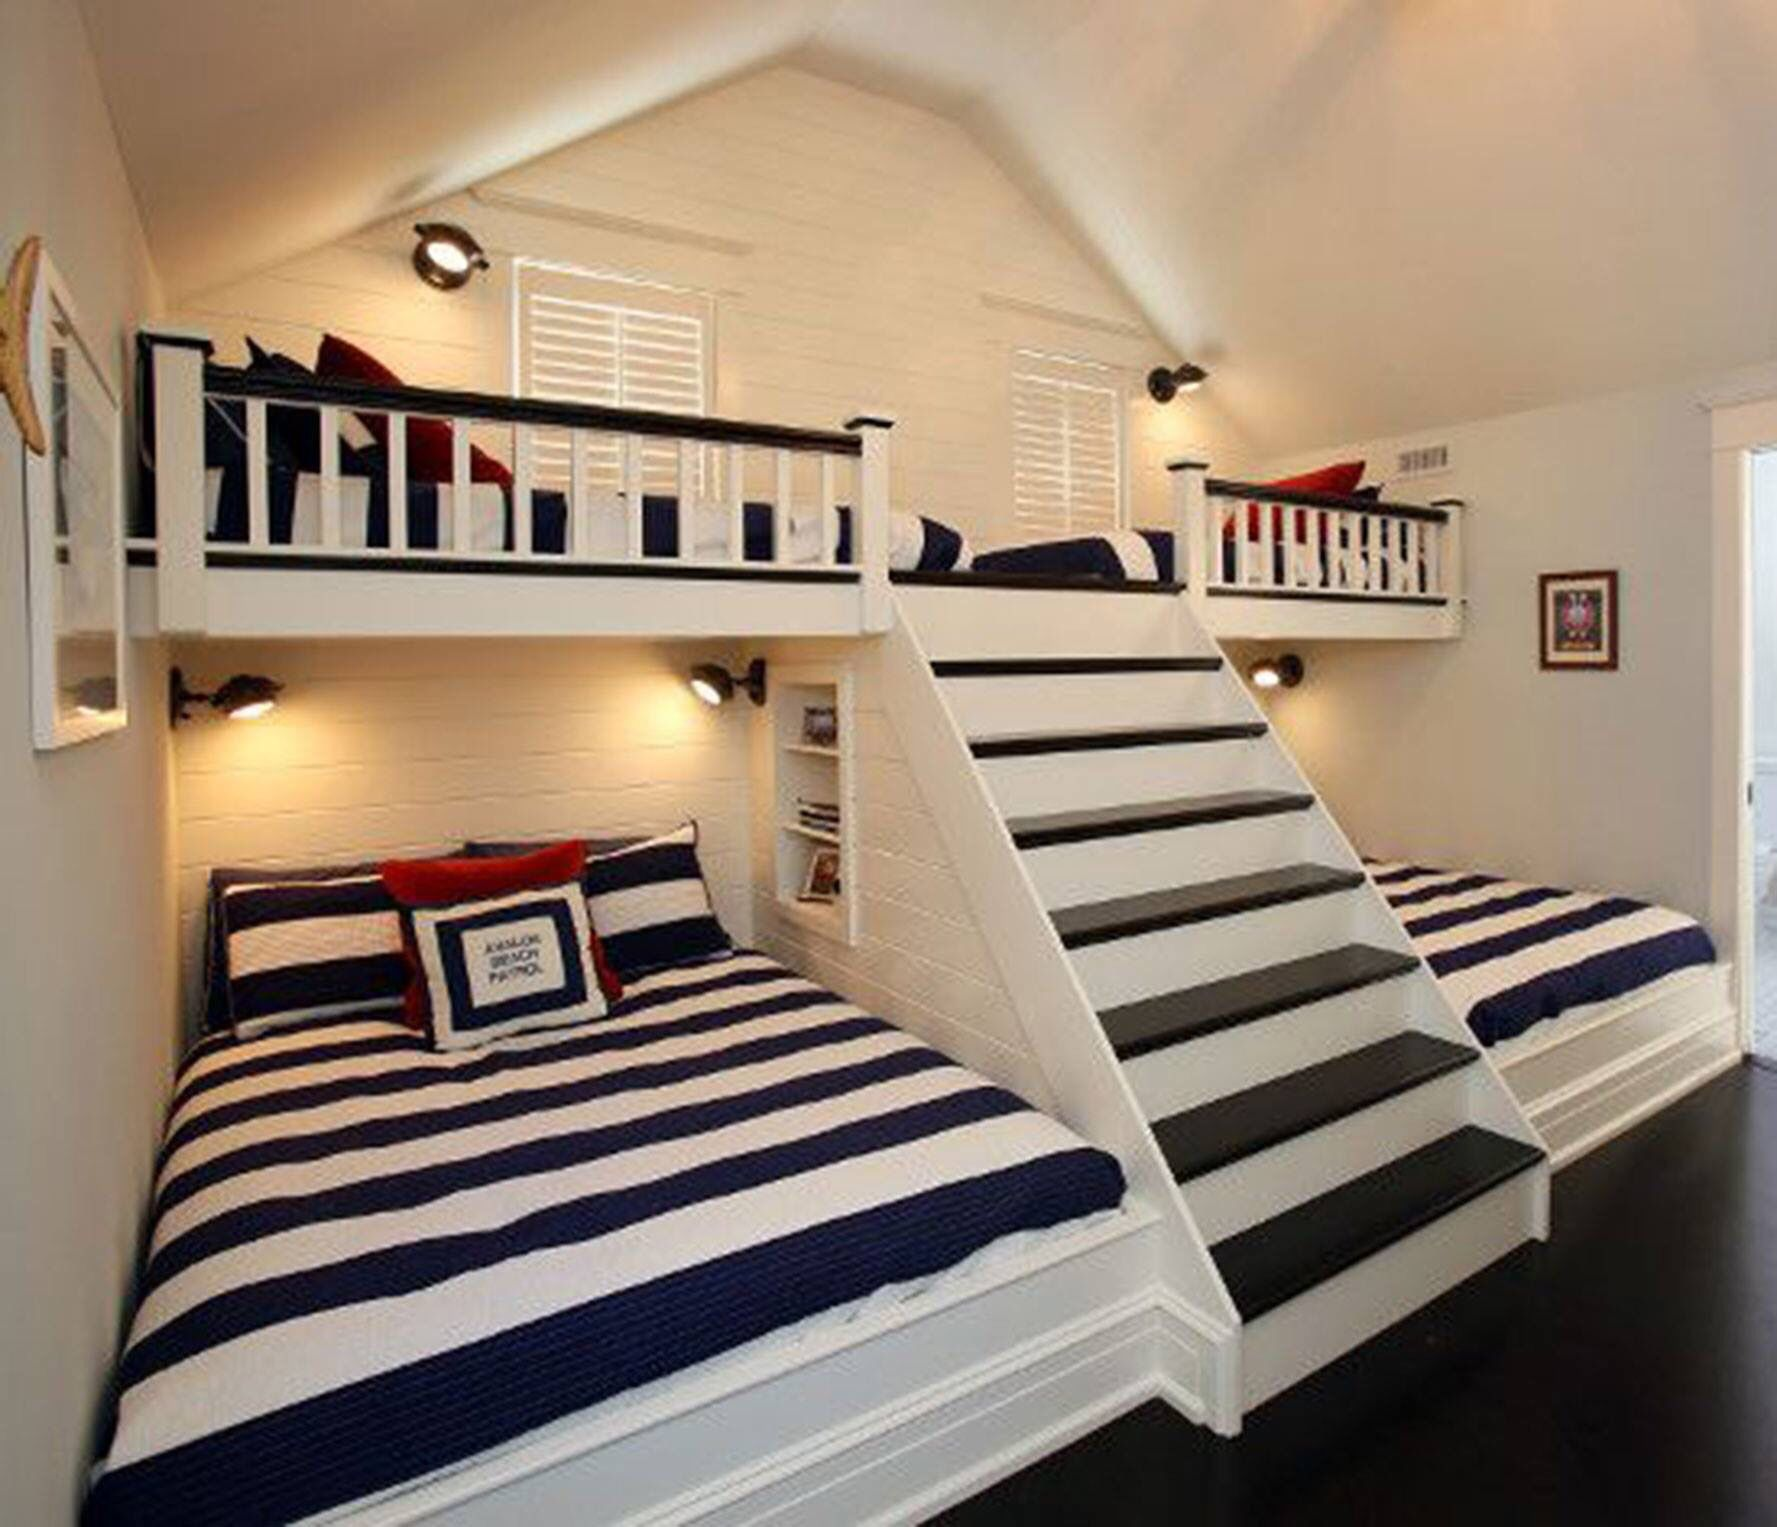 Custom 4 Beds In A Room Double Beds With Stairs To Bunk Great From A Cabin A Summer Home Kids Room Girl Room Girlie House Home Bedroom Design